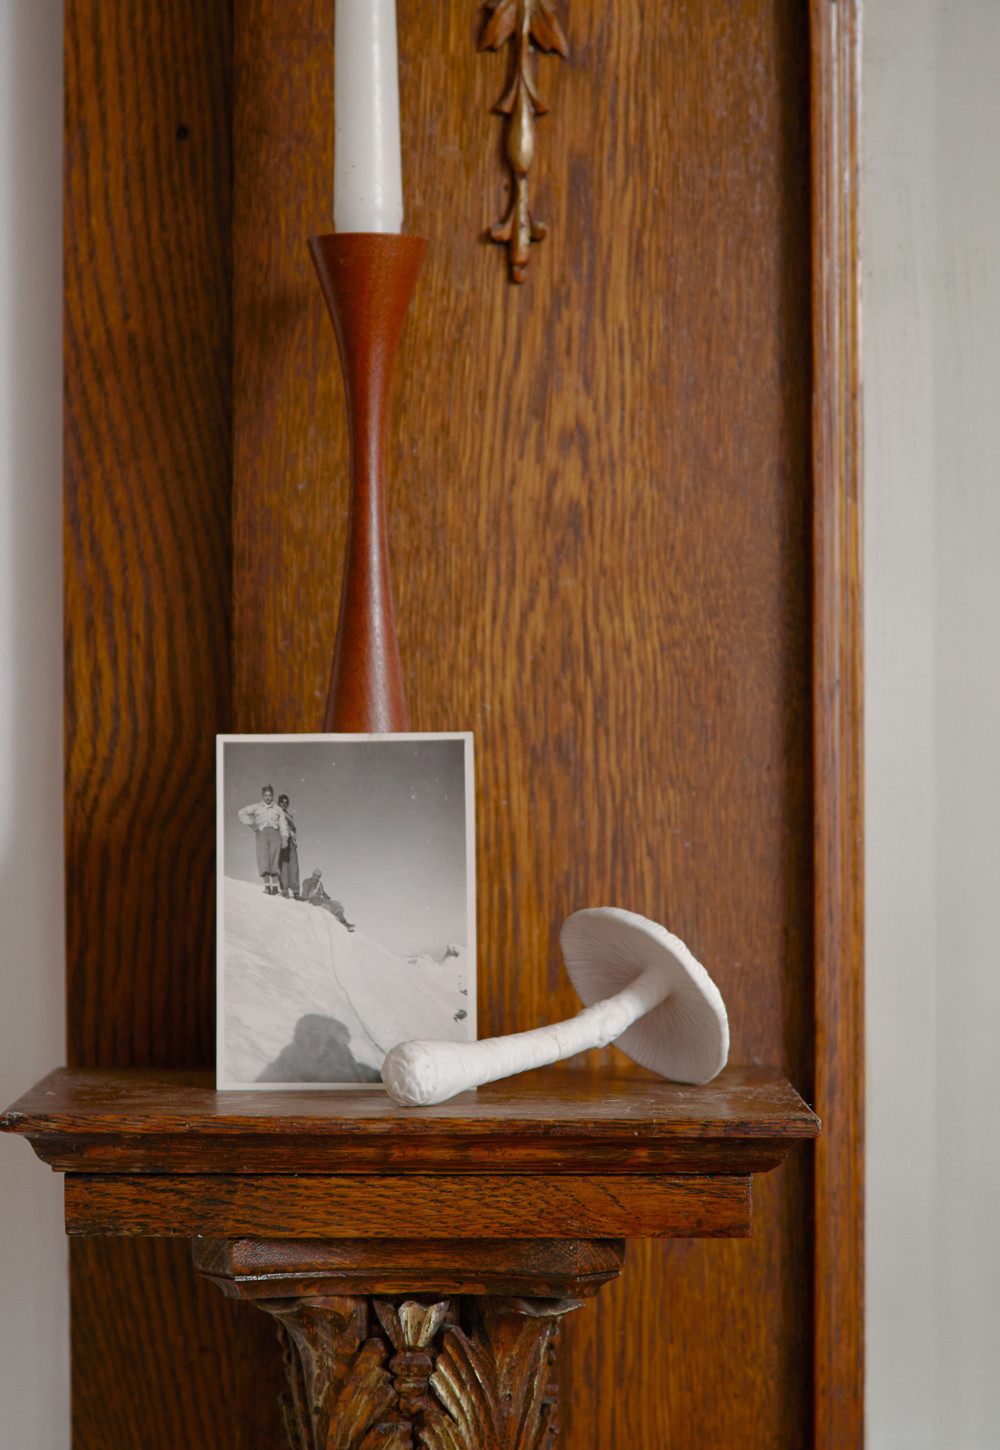 A photo of the author's father scaling the Swiss mountains is set next to a porcelain mushroom and vintage candlestick.